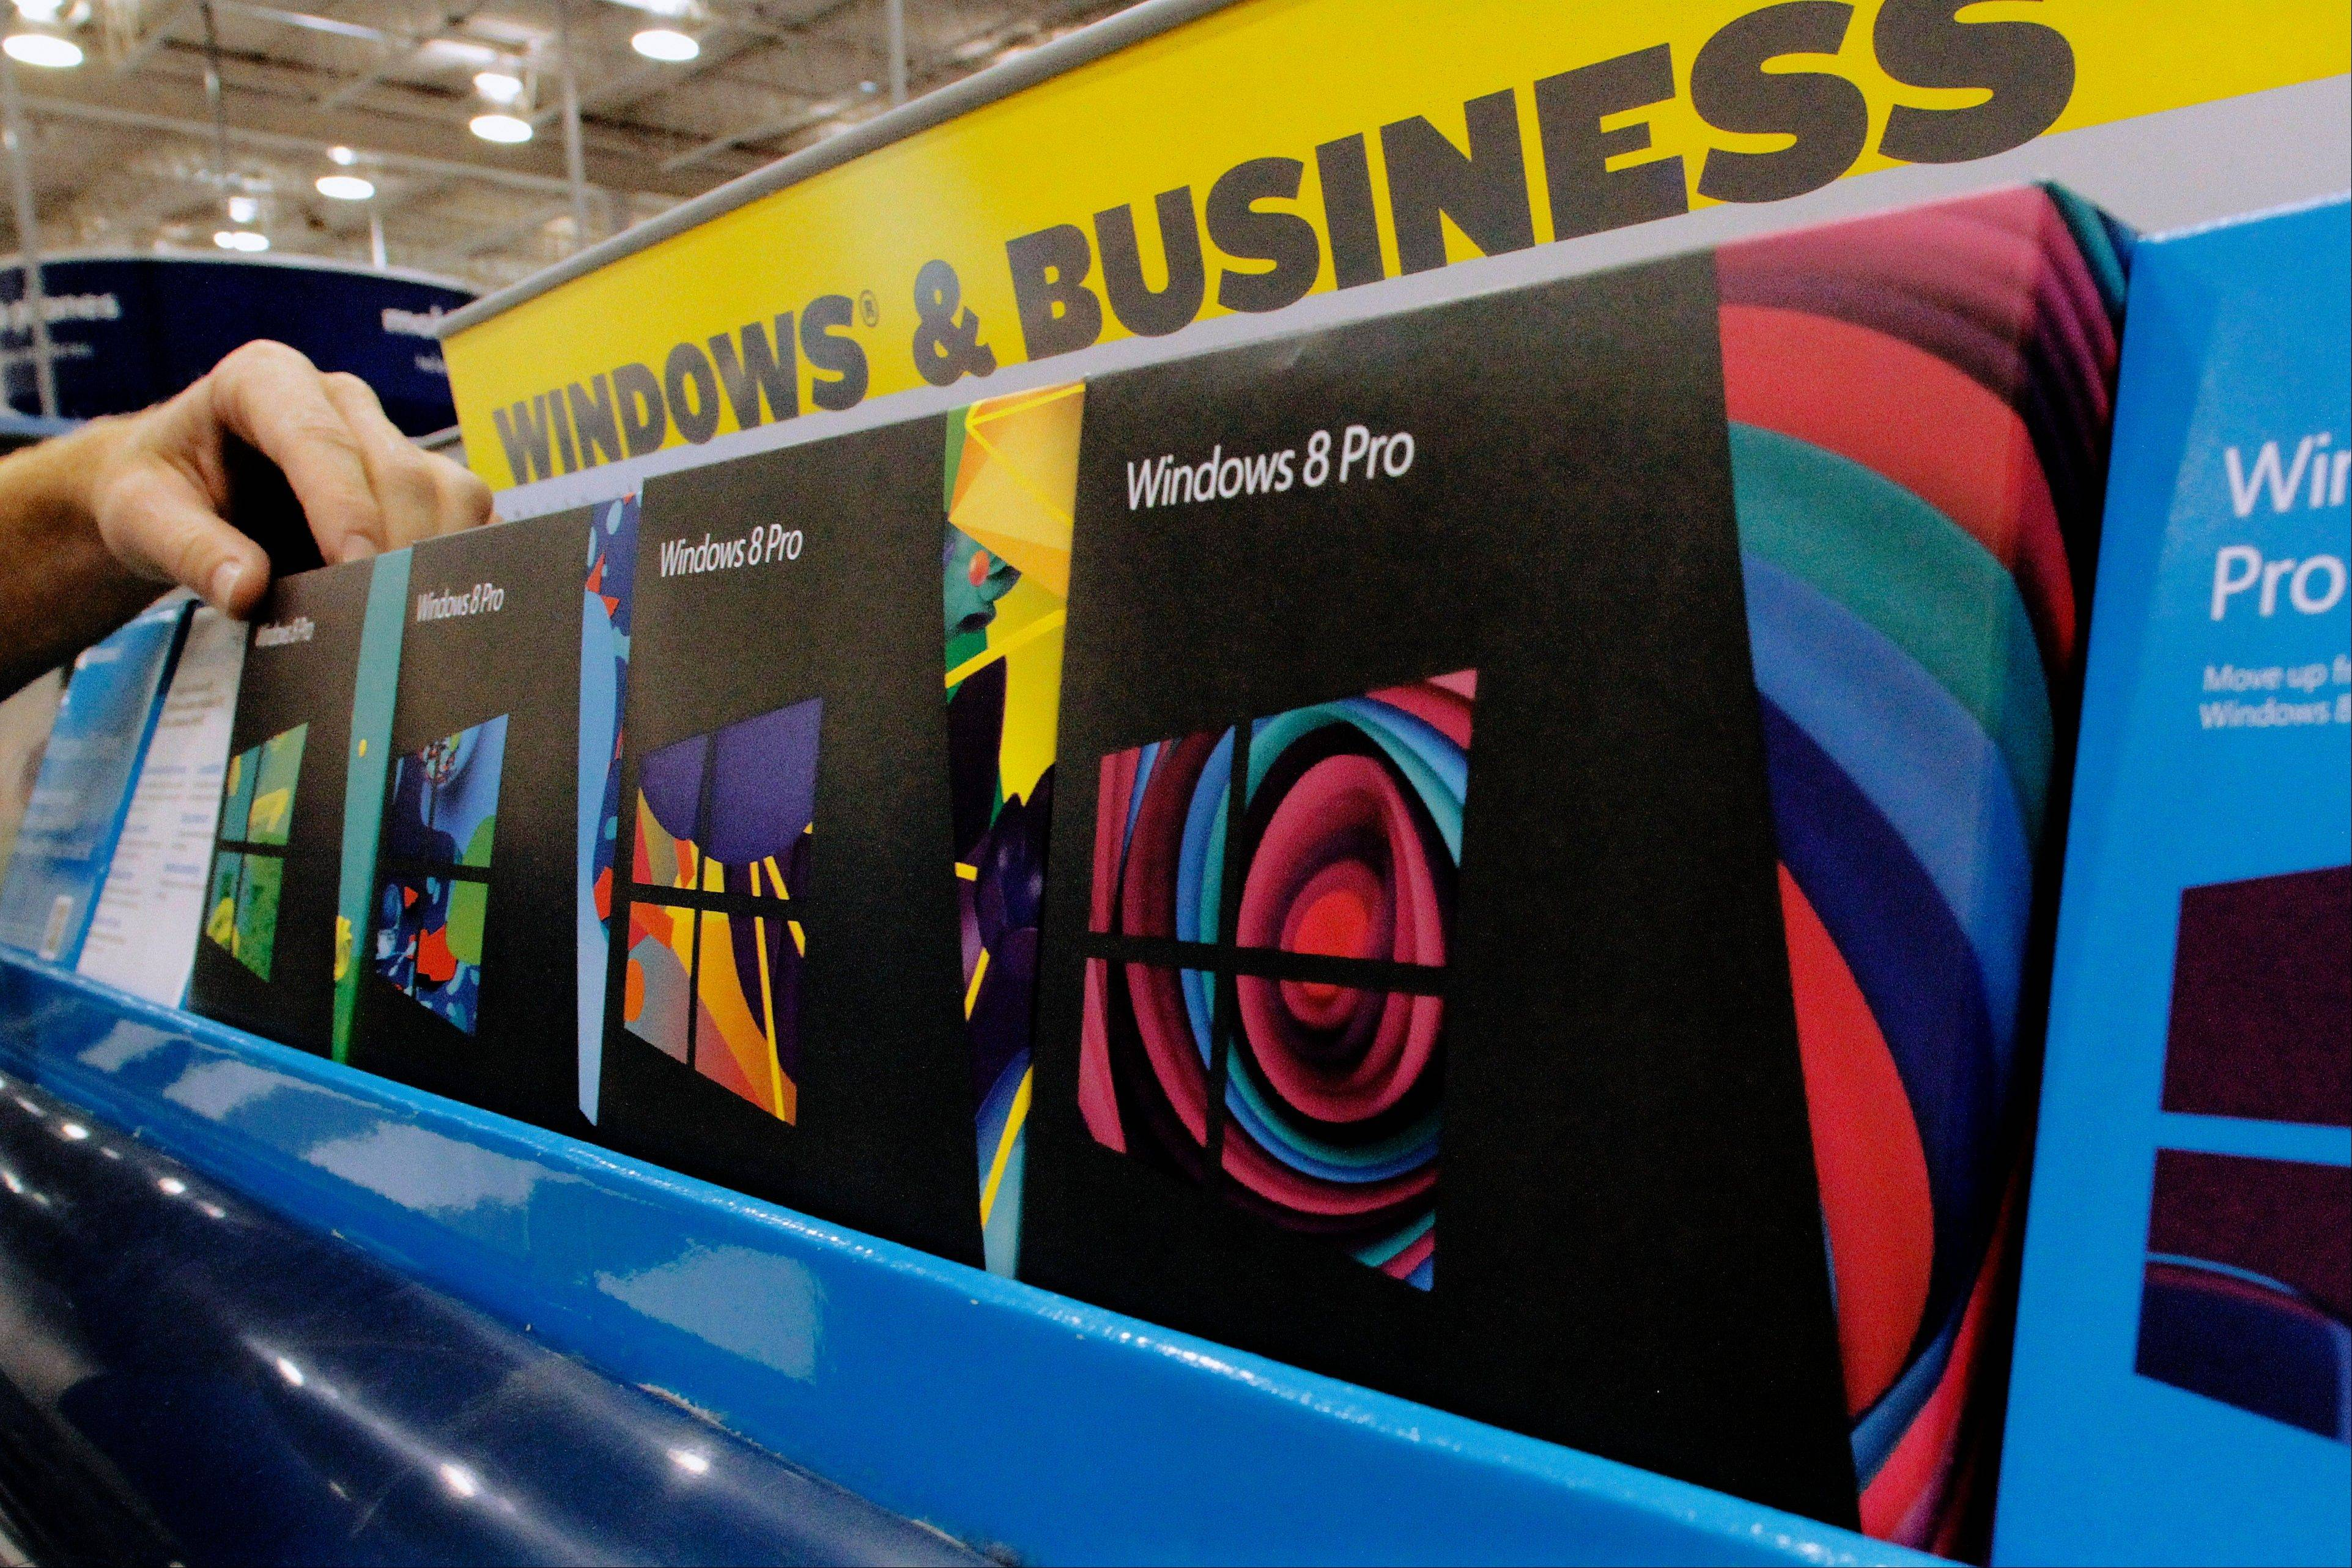 Different versions of the Microsoft Windows 8 operating system displayed during a media availability at Best Buy Friday in Springfield, Ill. Friday was the first day of sales for the new Windows 8 operating system.